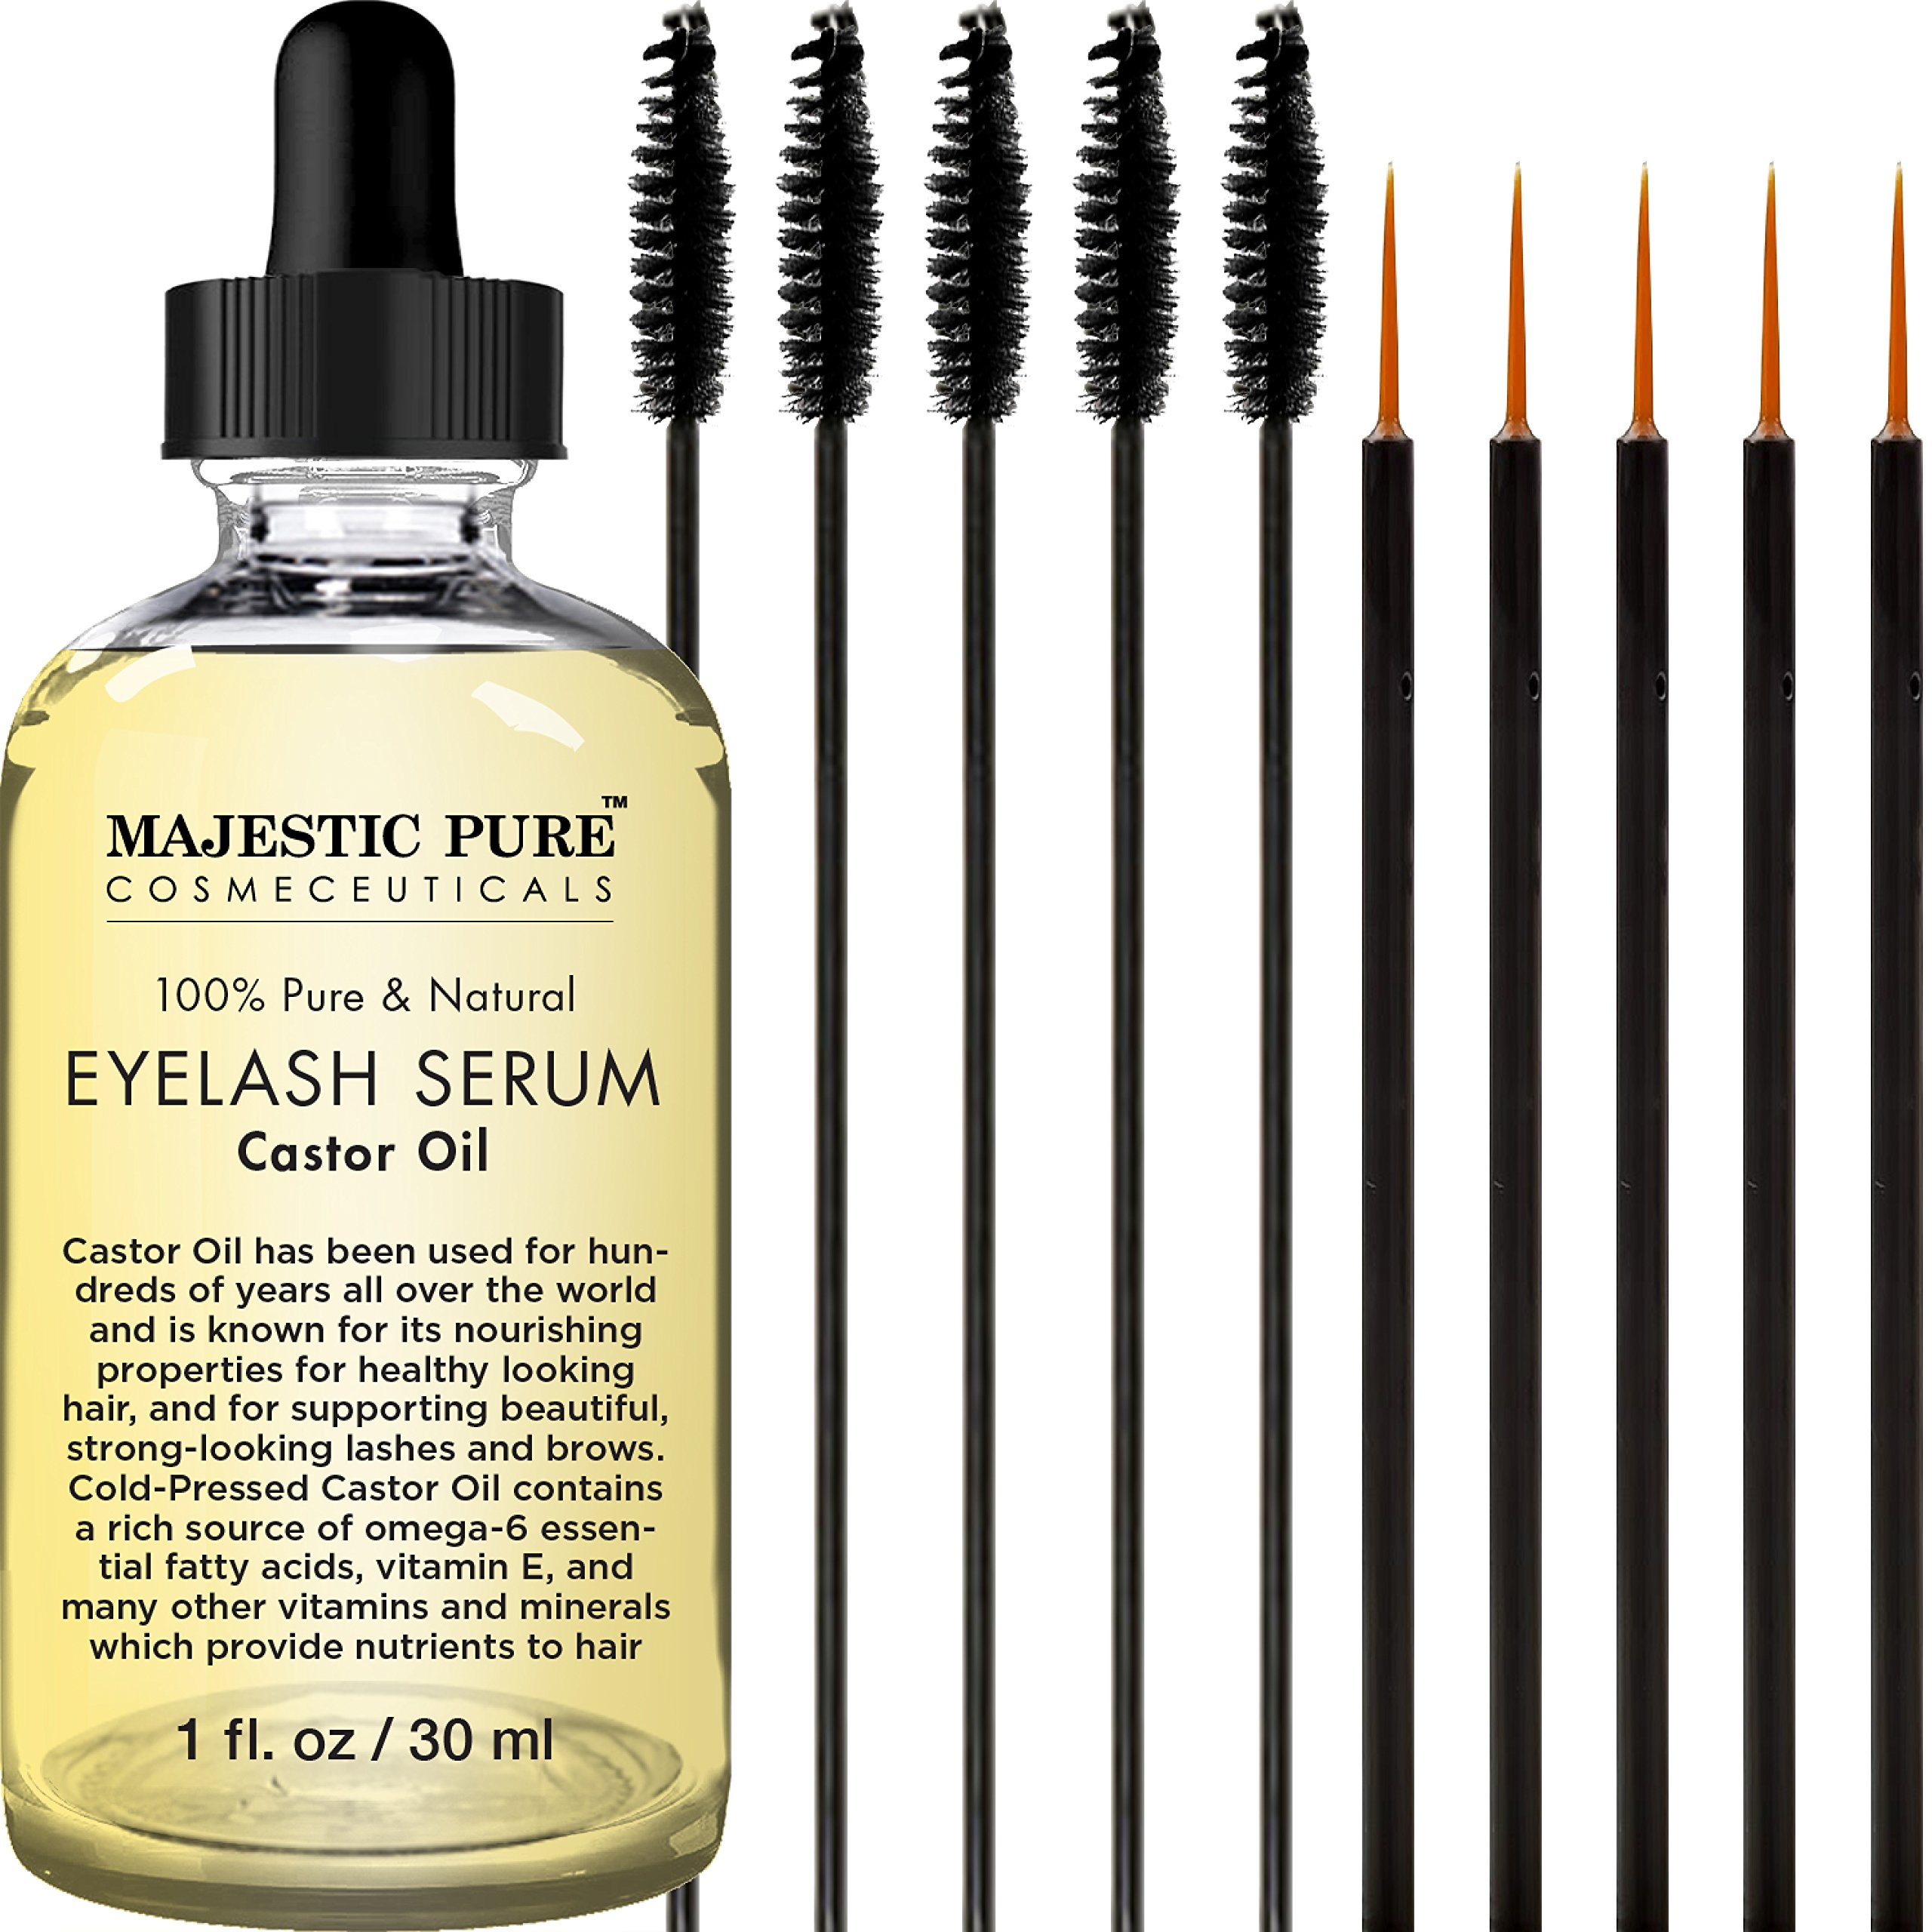 Majestic Pure Castor Oil Eyelash Serum, Pure and Natural, Promotes Natural Eyebrows & Eyelash Growth, Free Set of Mascara Brush and Eyeliner Applicator - 1 fl oz